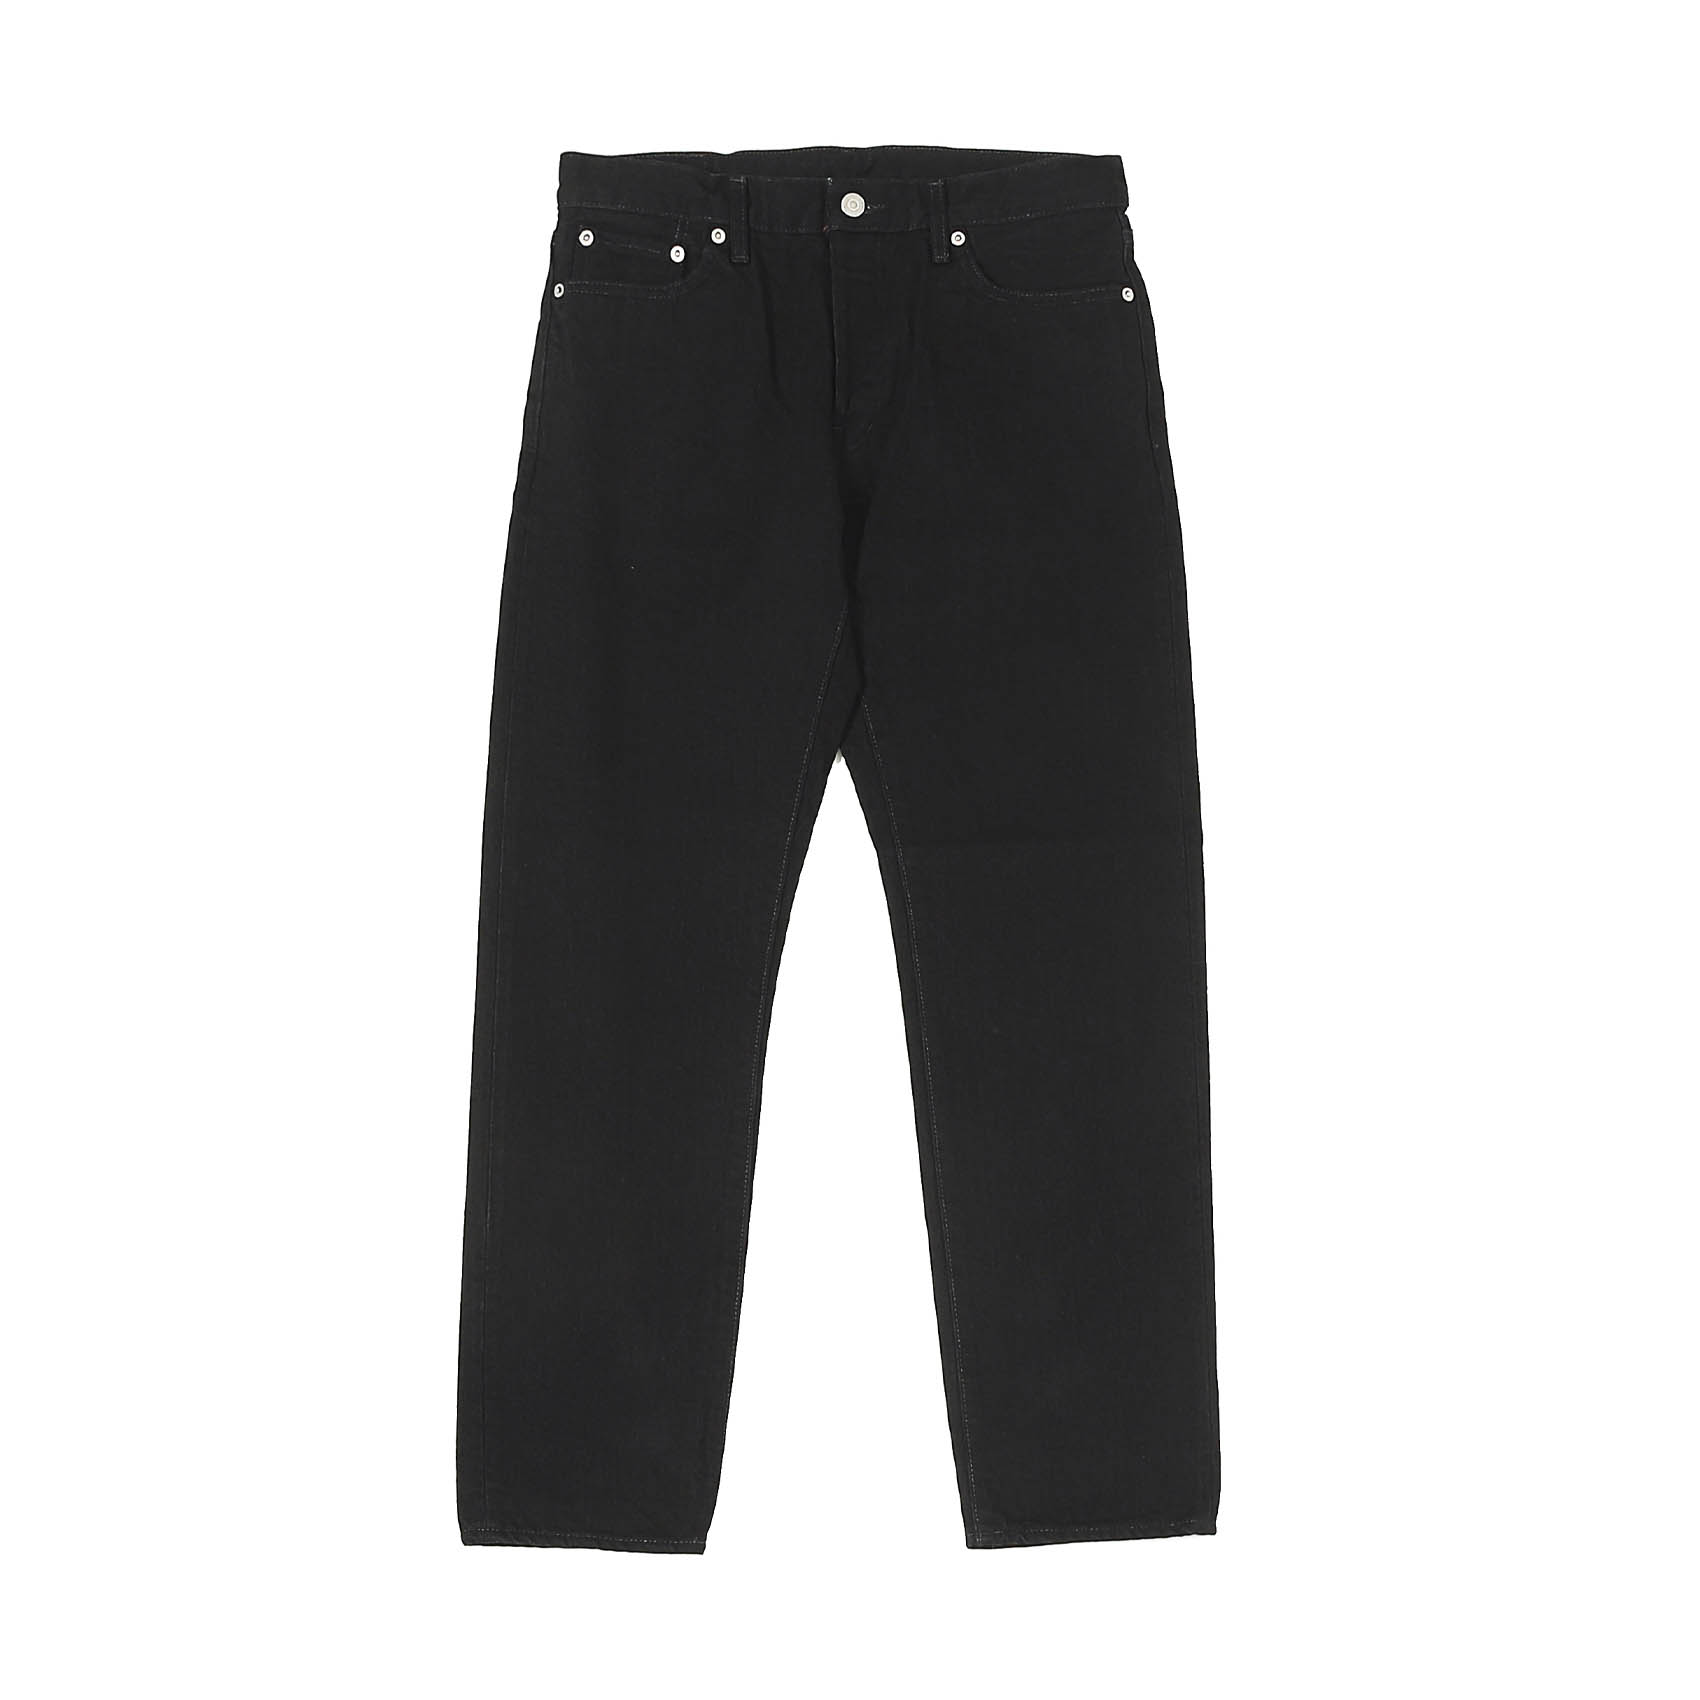 5 POCKET ROLL UP DENIM PANTS - BLACK OW